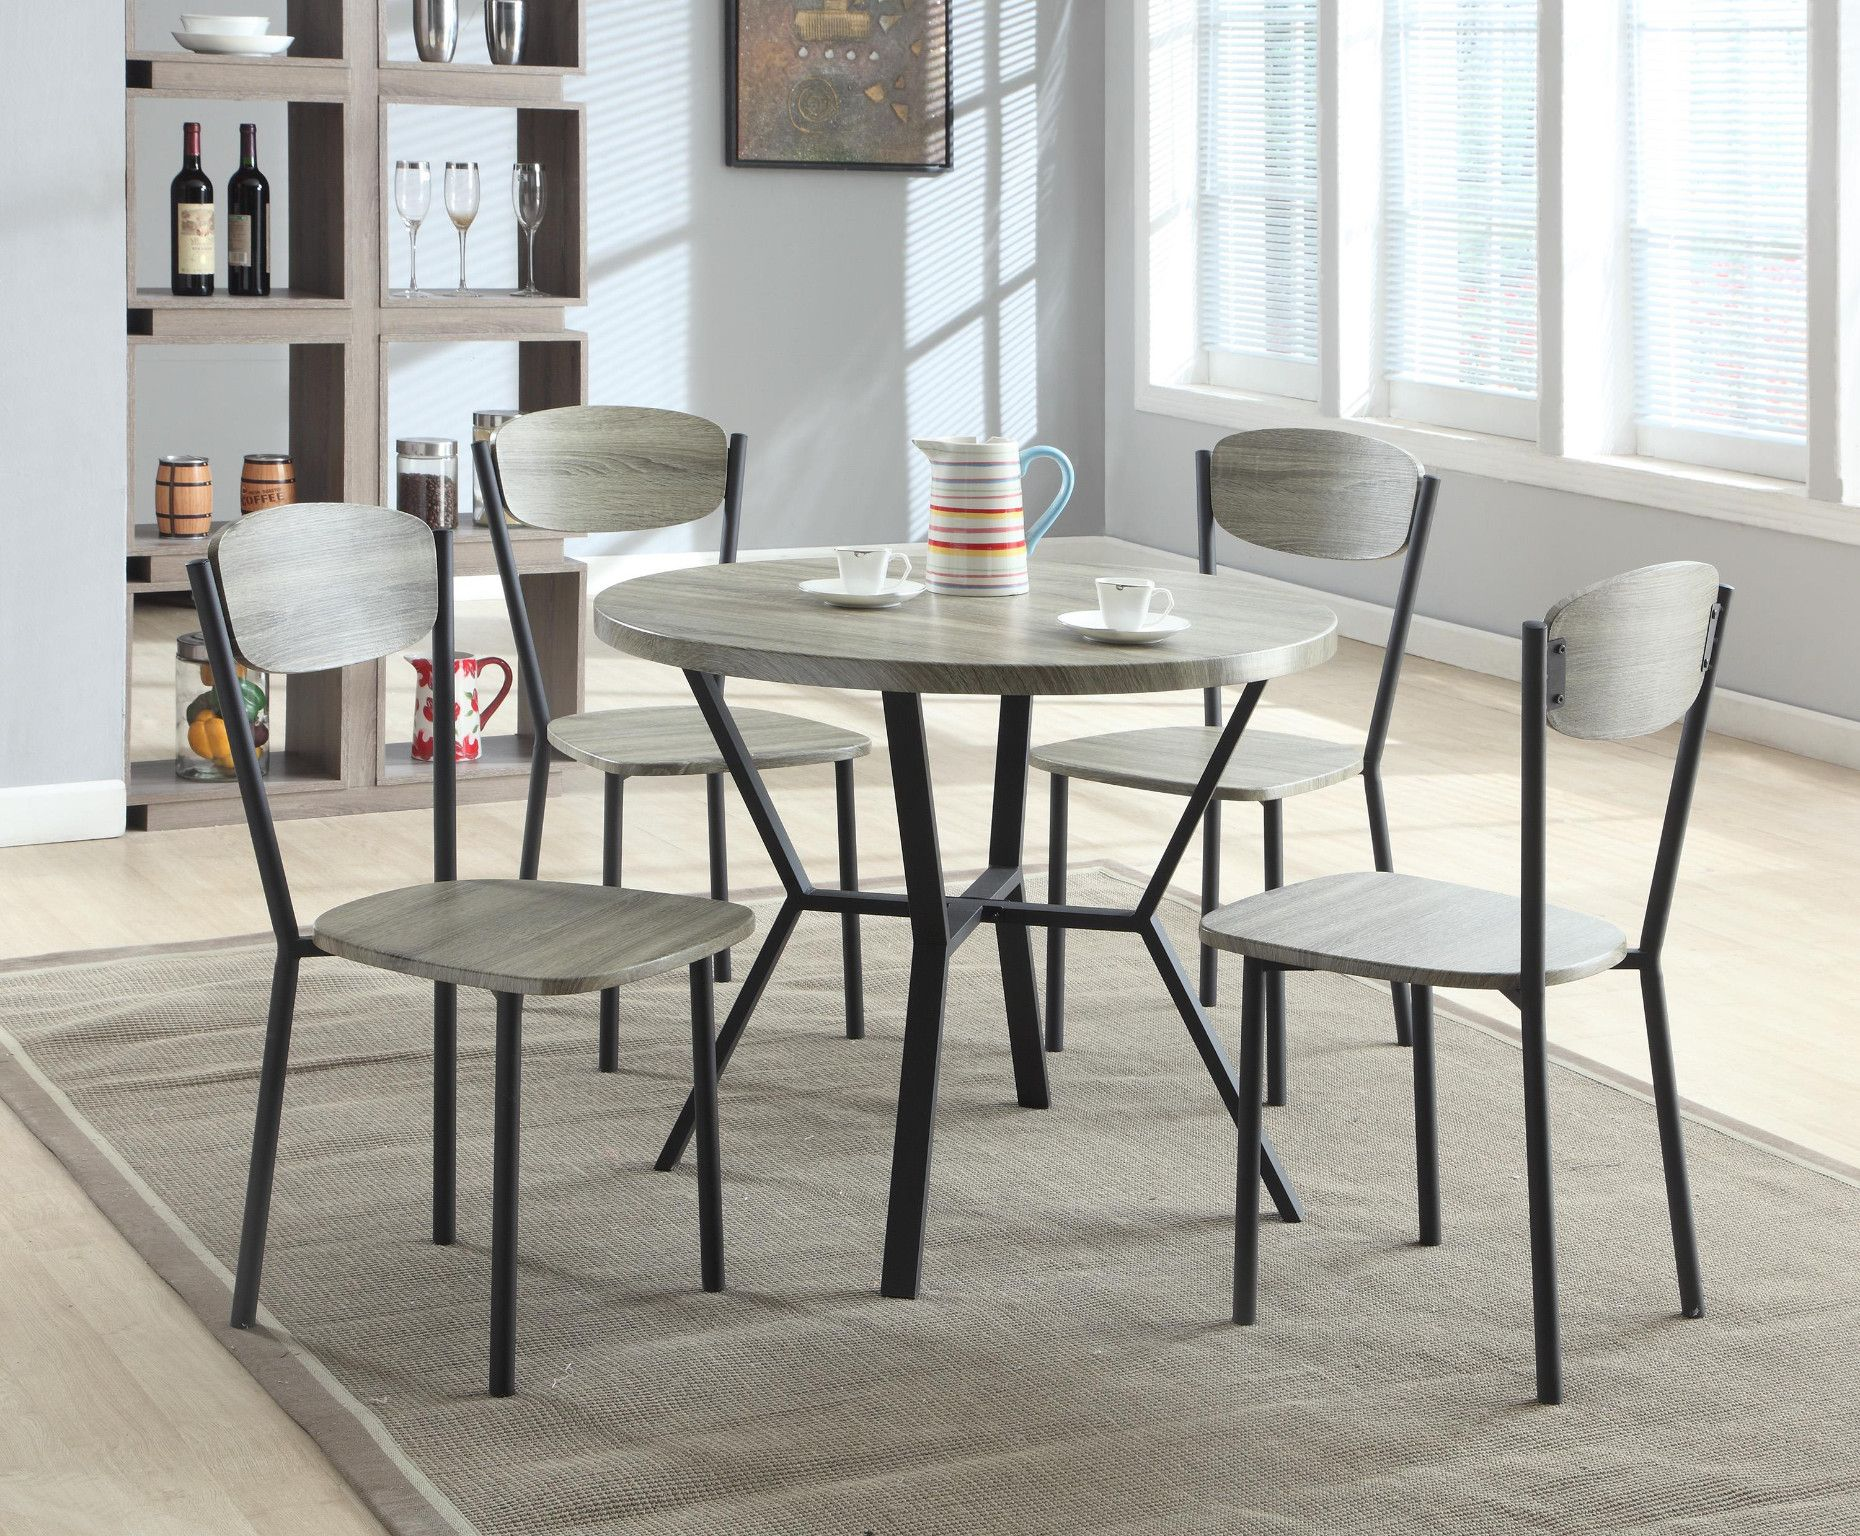 Blake 5 Piece Dinette Table And 4 Chairs 299 00 Table 35 2 Dia X 30 H Cha Grey Round Dining Table Round Dining Table Sets Round Wood Dining Table